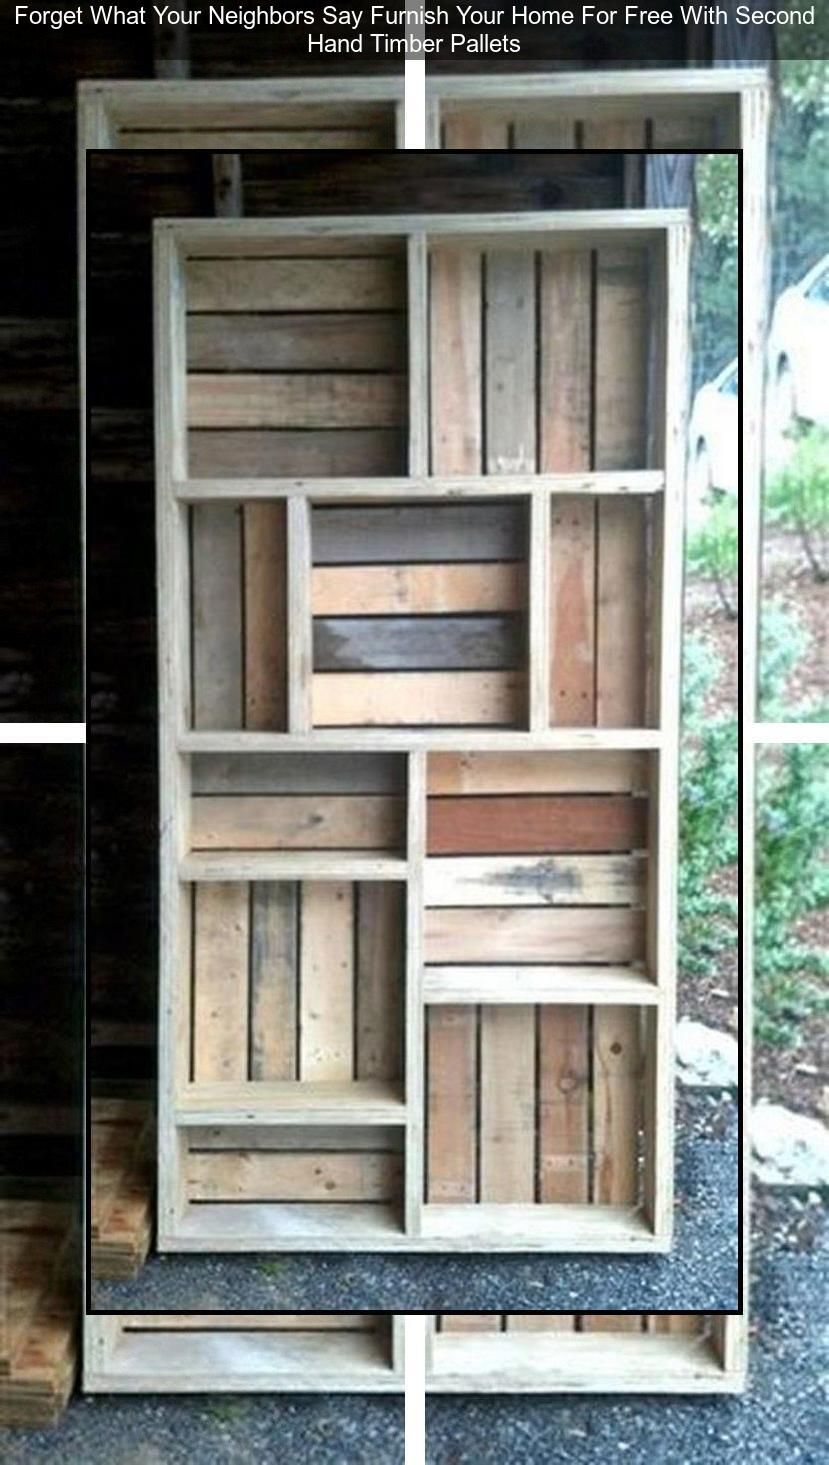 Buy Pallet Sofa   Make A Bench From Pallets   How To Build ...